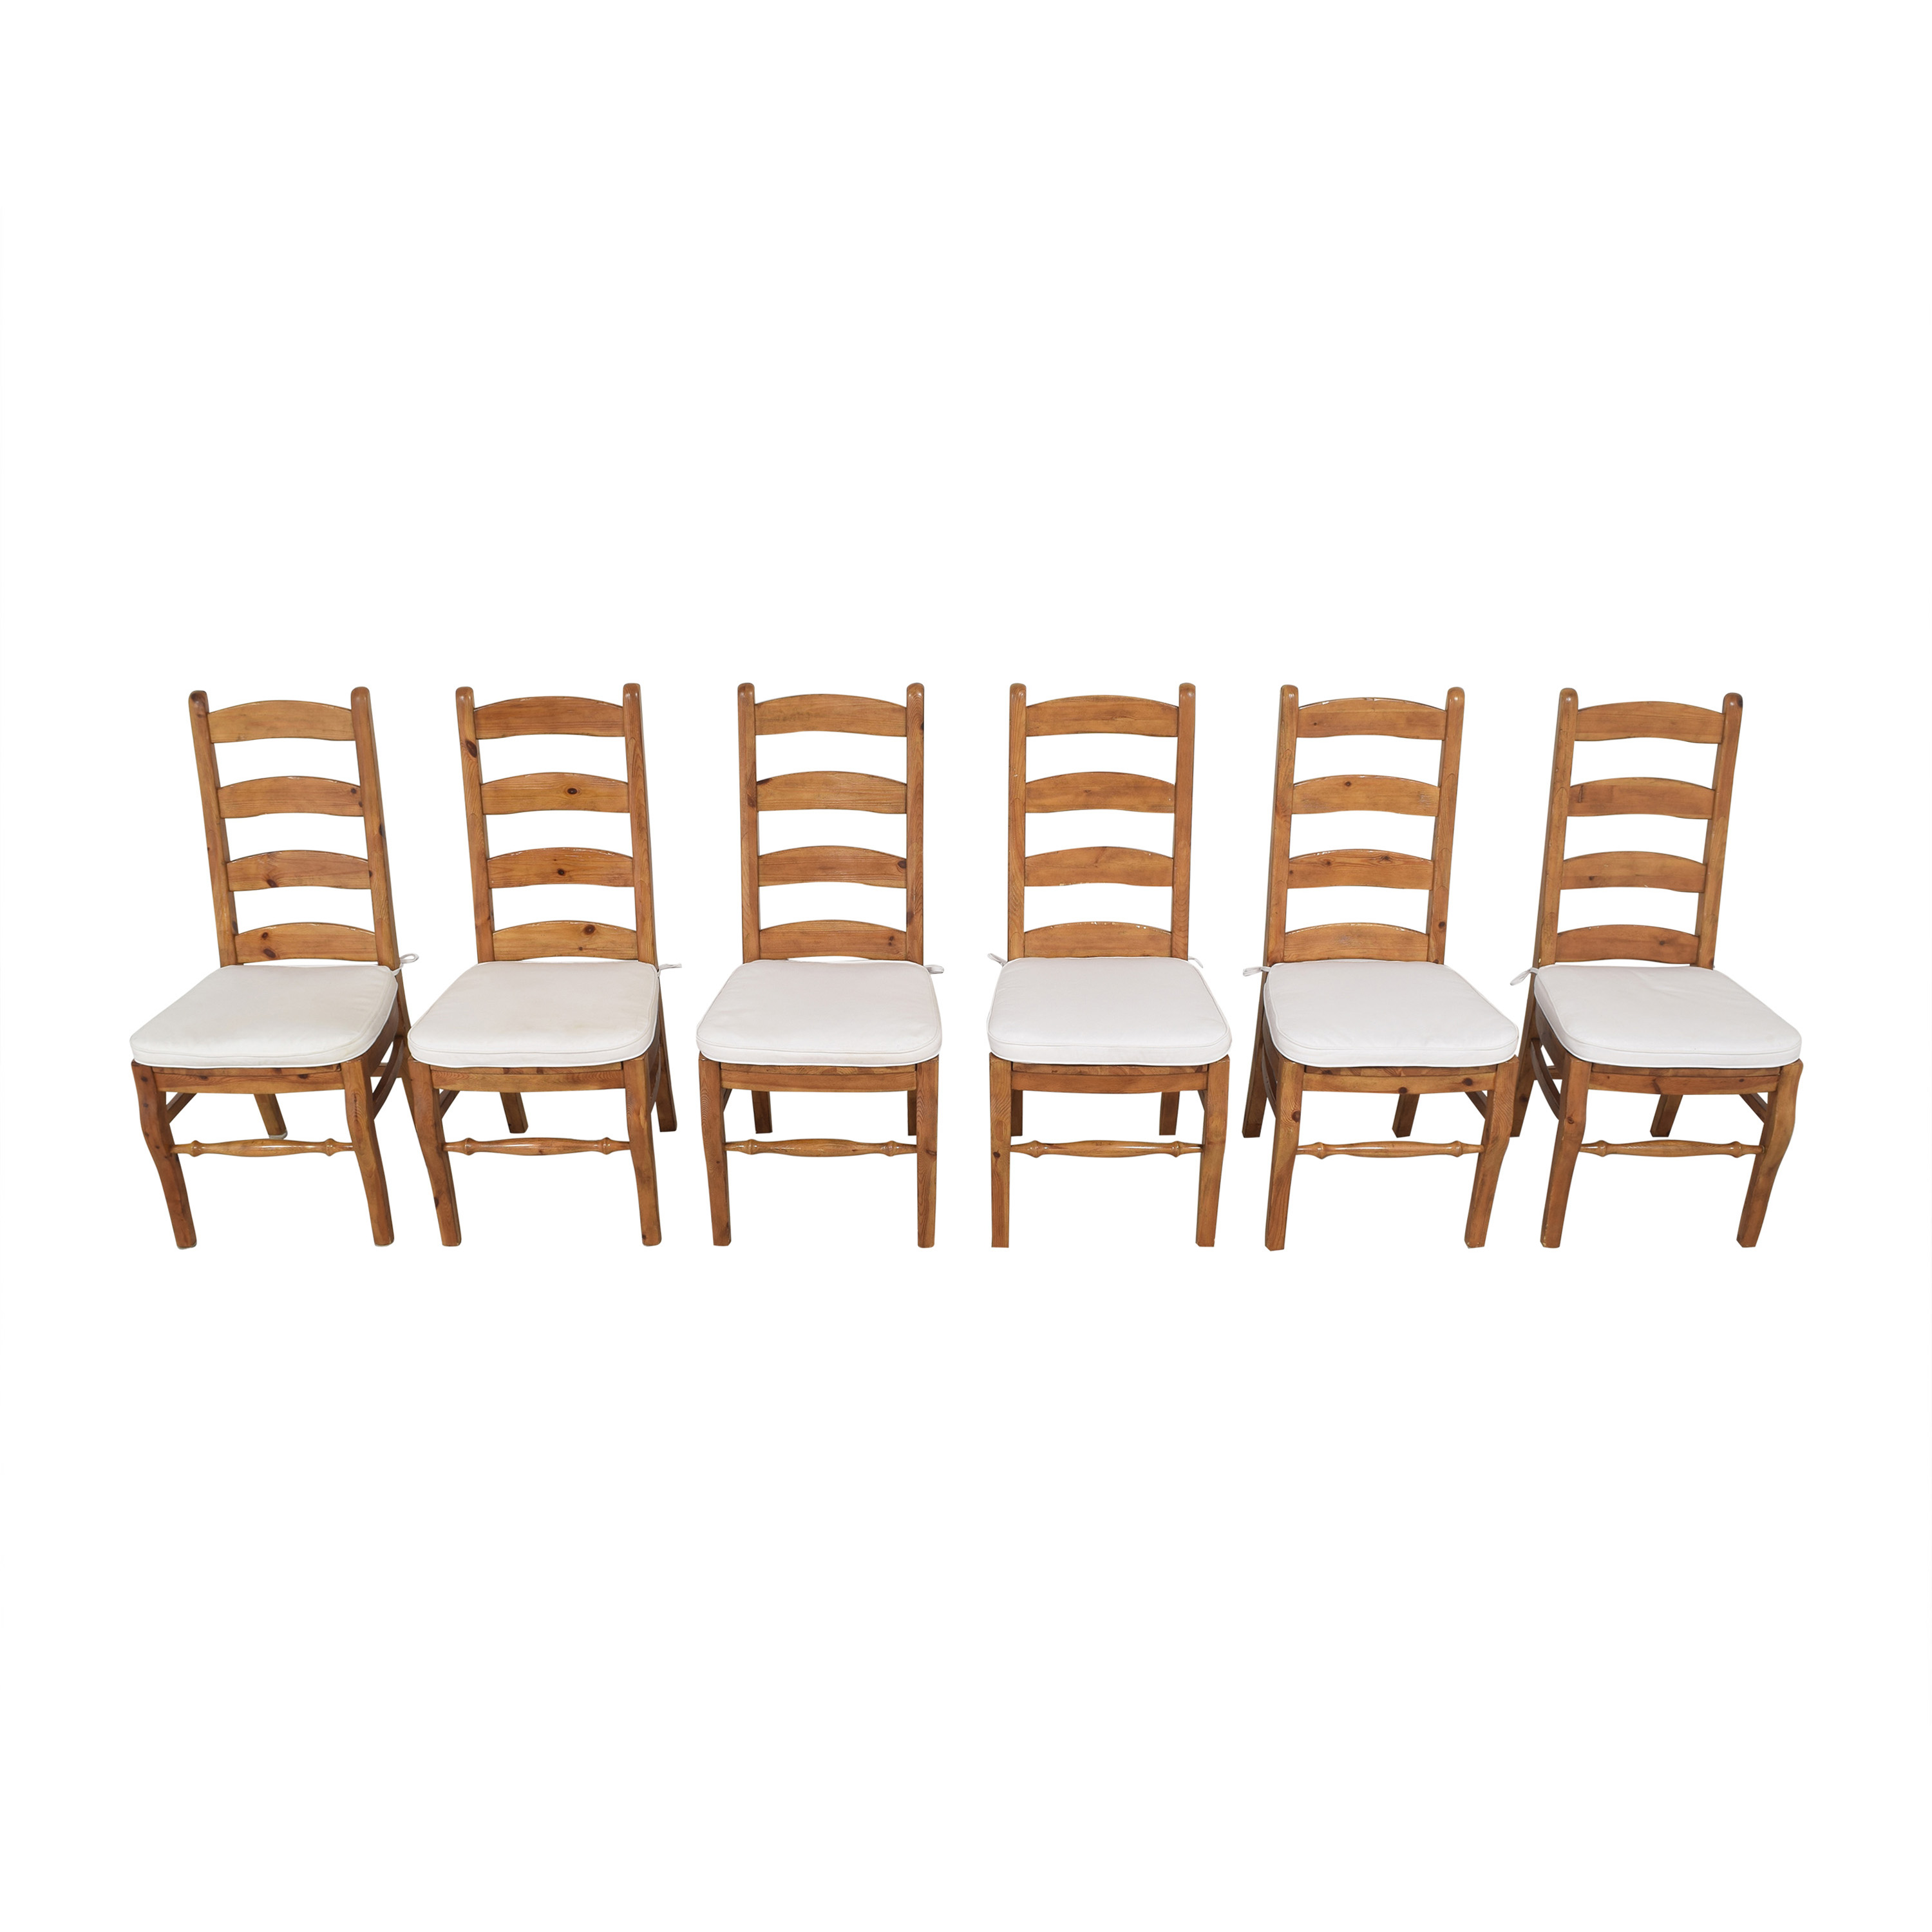 Pottery Barn Pottery Barn Wynn Ladder Back Dining Chairs coupon